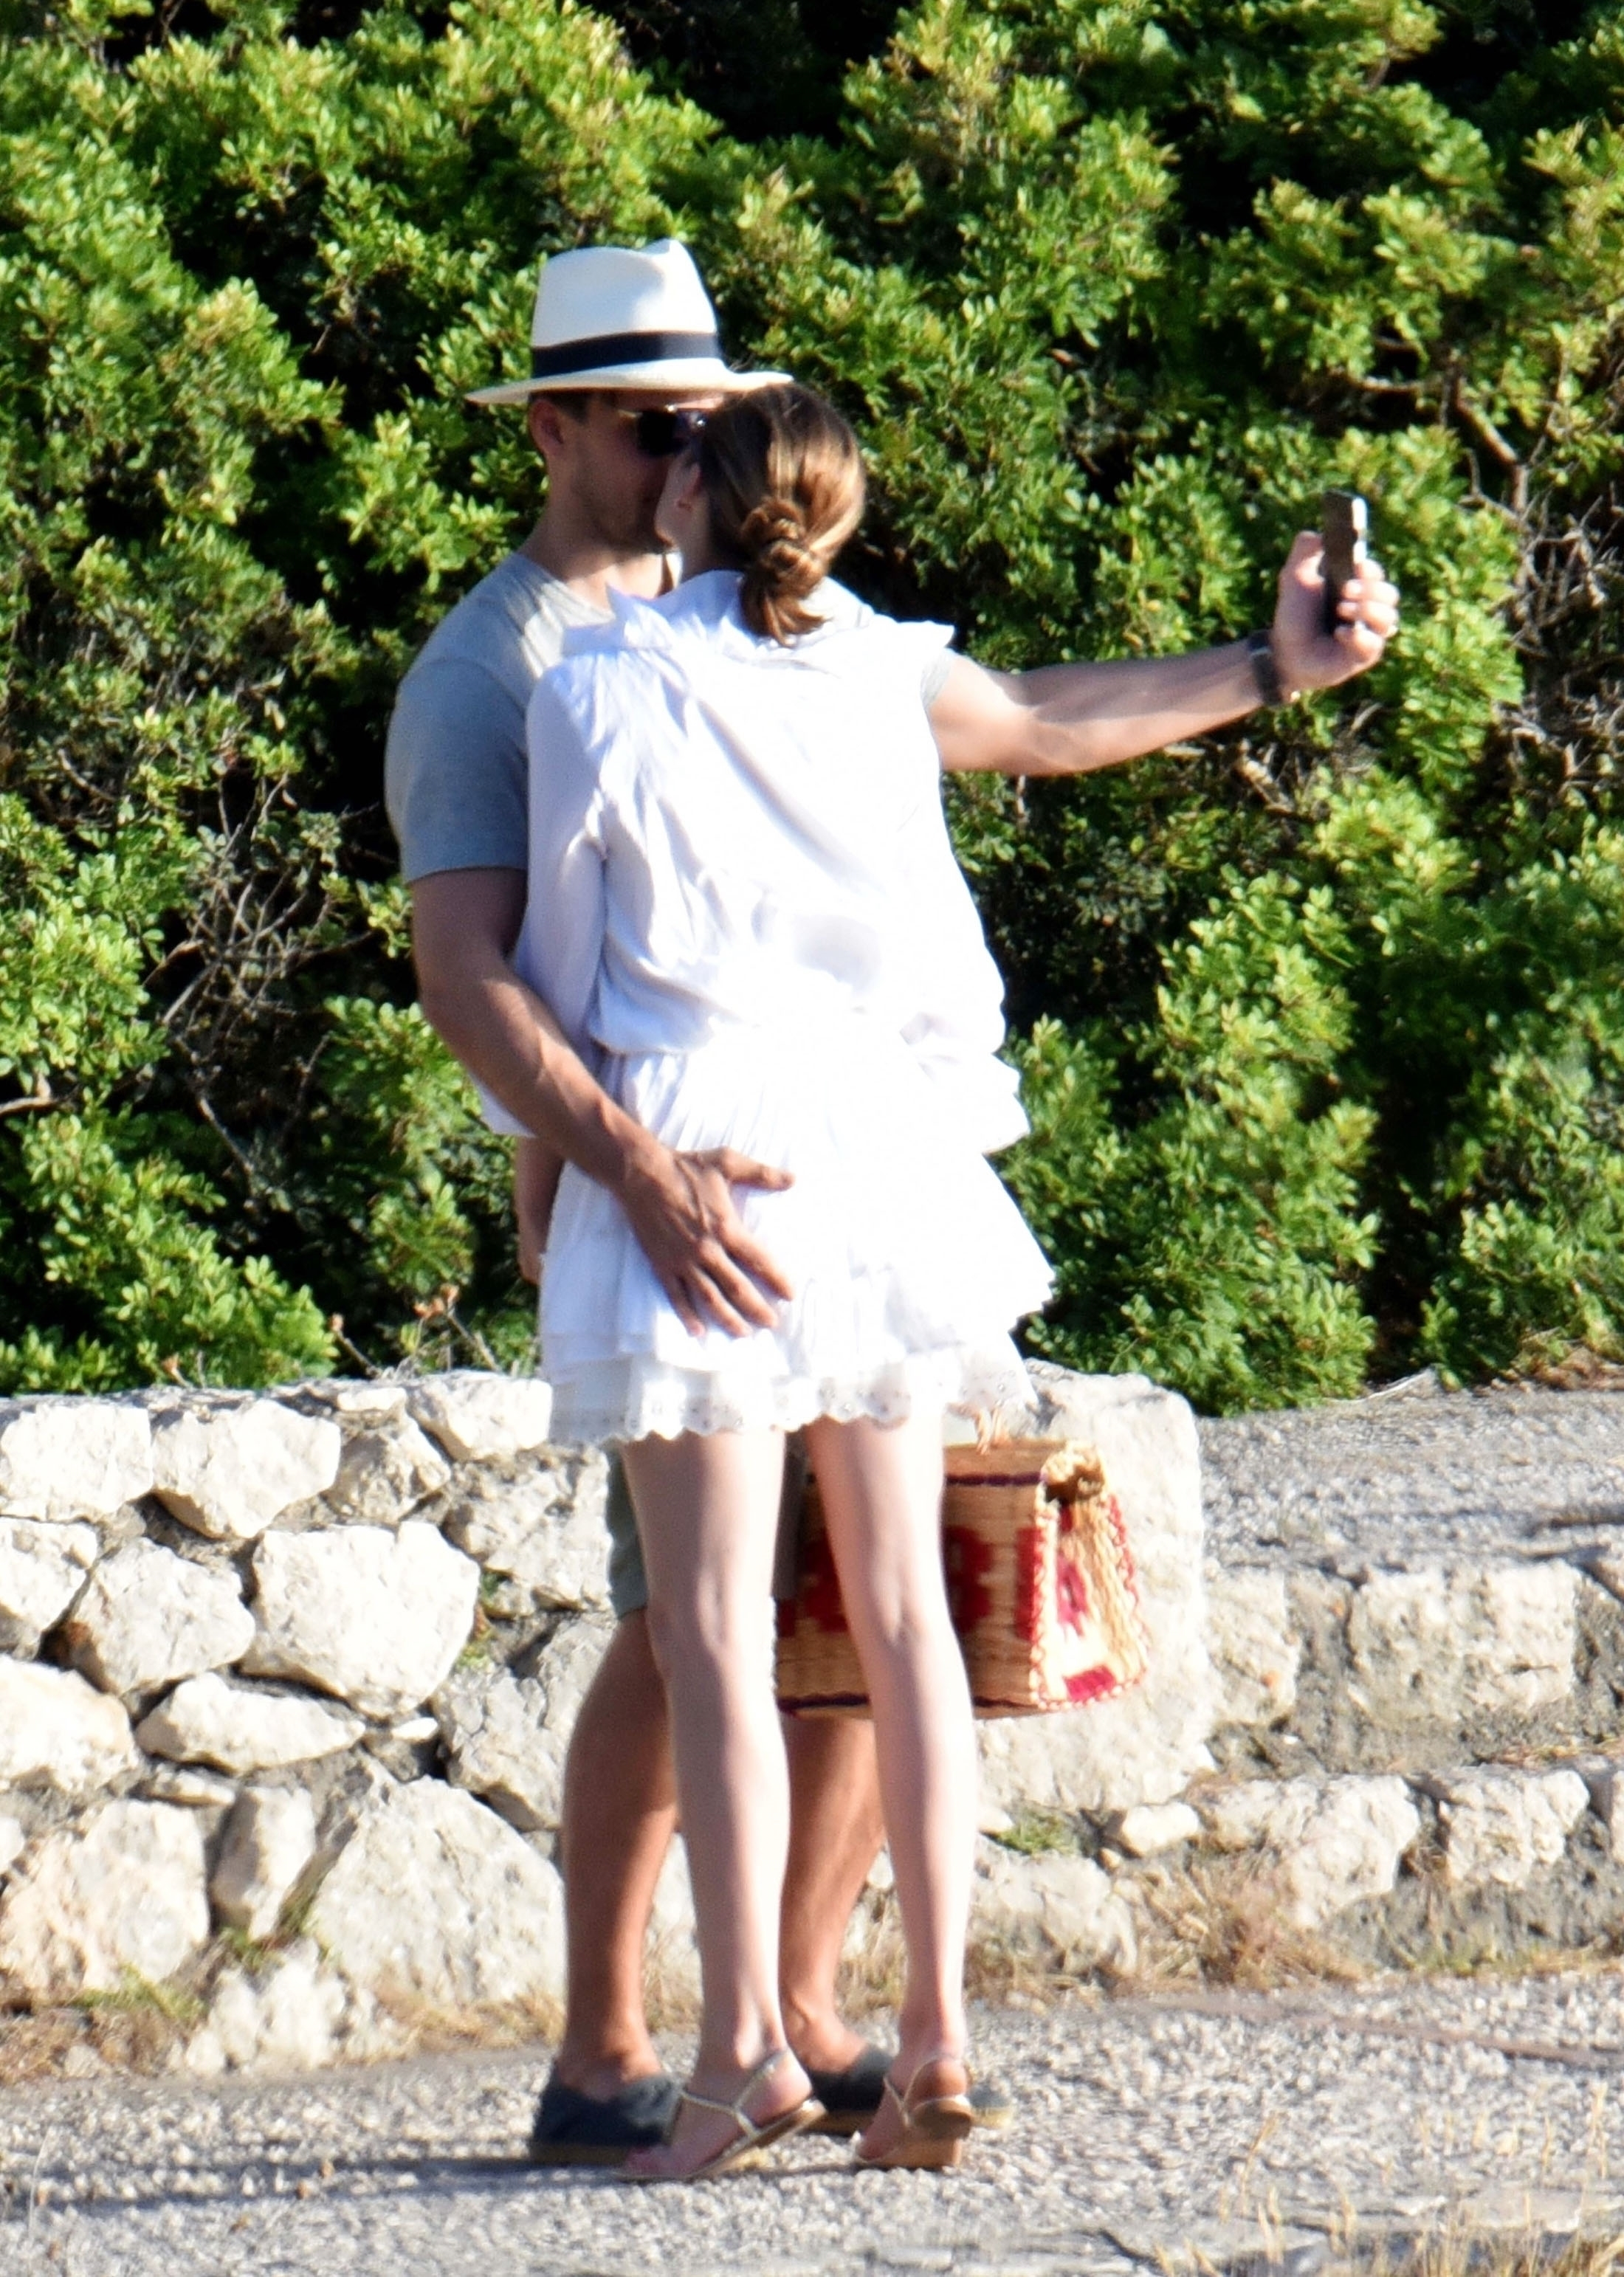 *EXCLUSIVE* ** RIGHTS: WORLDWIDE EXCEPT IN FRANCE, ITALY, SPAIN ** Italy, ITALY  - American socialite Olivia Palermo and husband Johannes Huebl pictured taking in some sightseeing while on Holiday In Capri - Olivia's Husband Johannes Huebl is pictured having a cheeky grab of Olivia derriere as they took a selfie and shared a kiss together.  Pictured: Olivia Palermo and Johannes Huebl  BACKGRID UK 10 JULY 2017   UK: +44 208 344 2007 / uksales@backgrid.com  USA: +1 310 798 9111 / usasales@backgrid.com  *UK Clients - Pictures Containing Children Please Pixelate Face Prior To Publication*, Image: 341498148, License: Rights-managed, Restrictions: , Model Release: no, Credit line: Profimedia, Xposurephotos